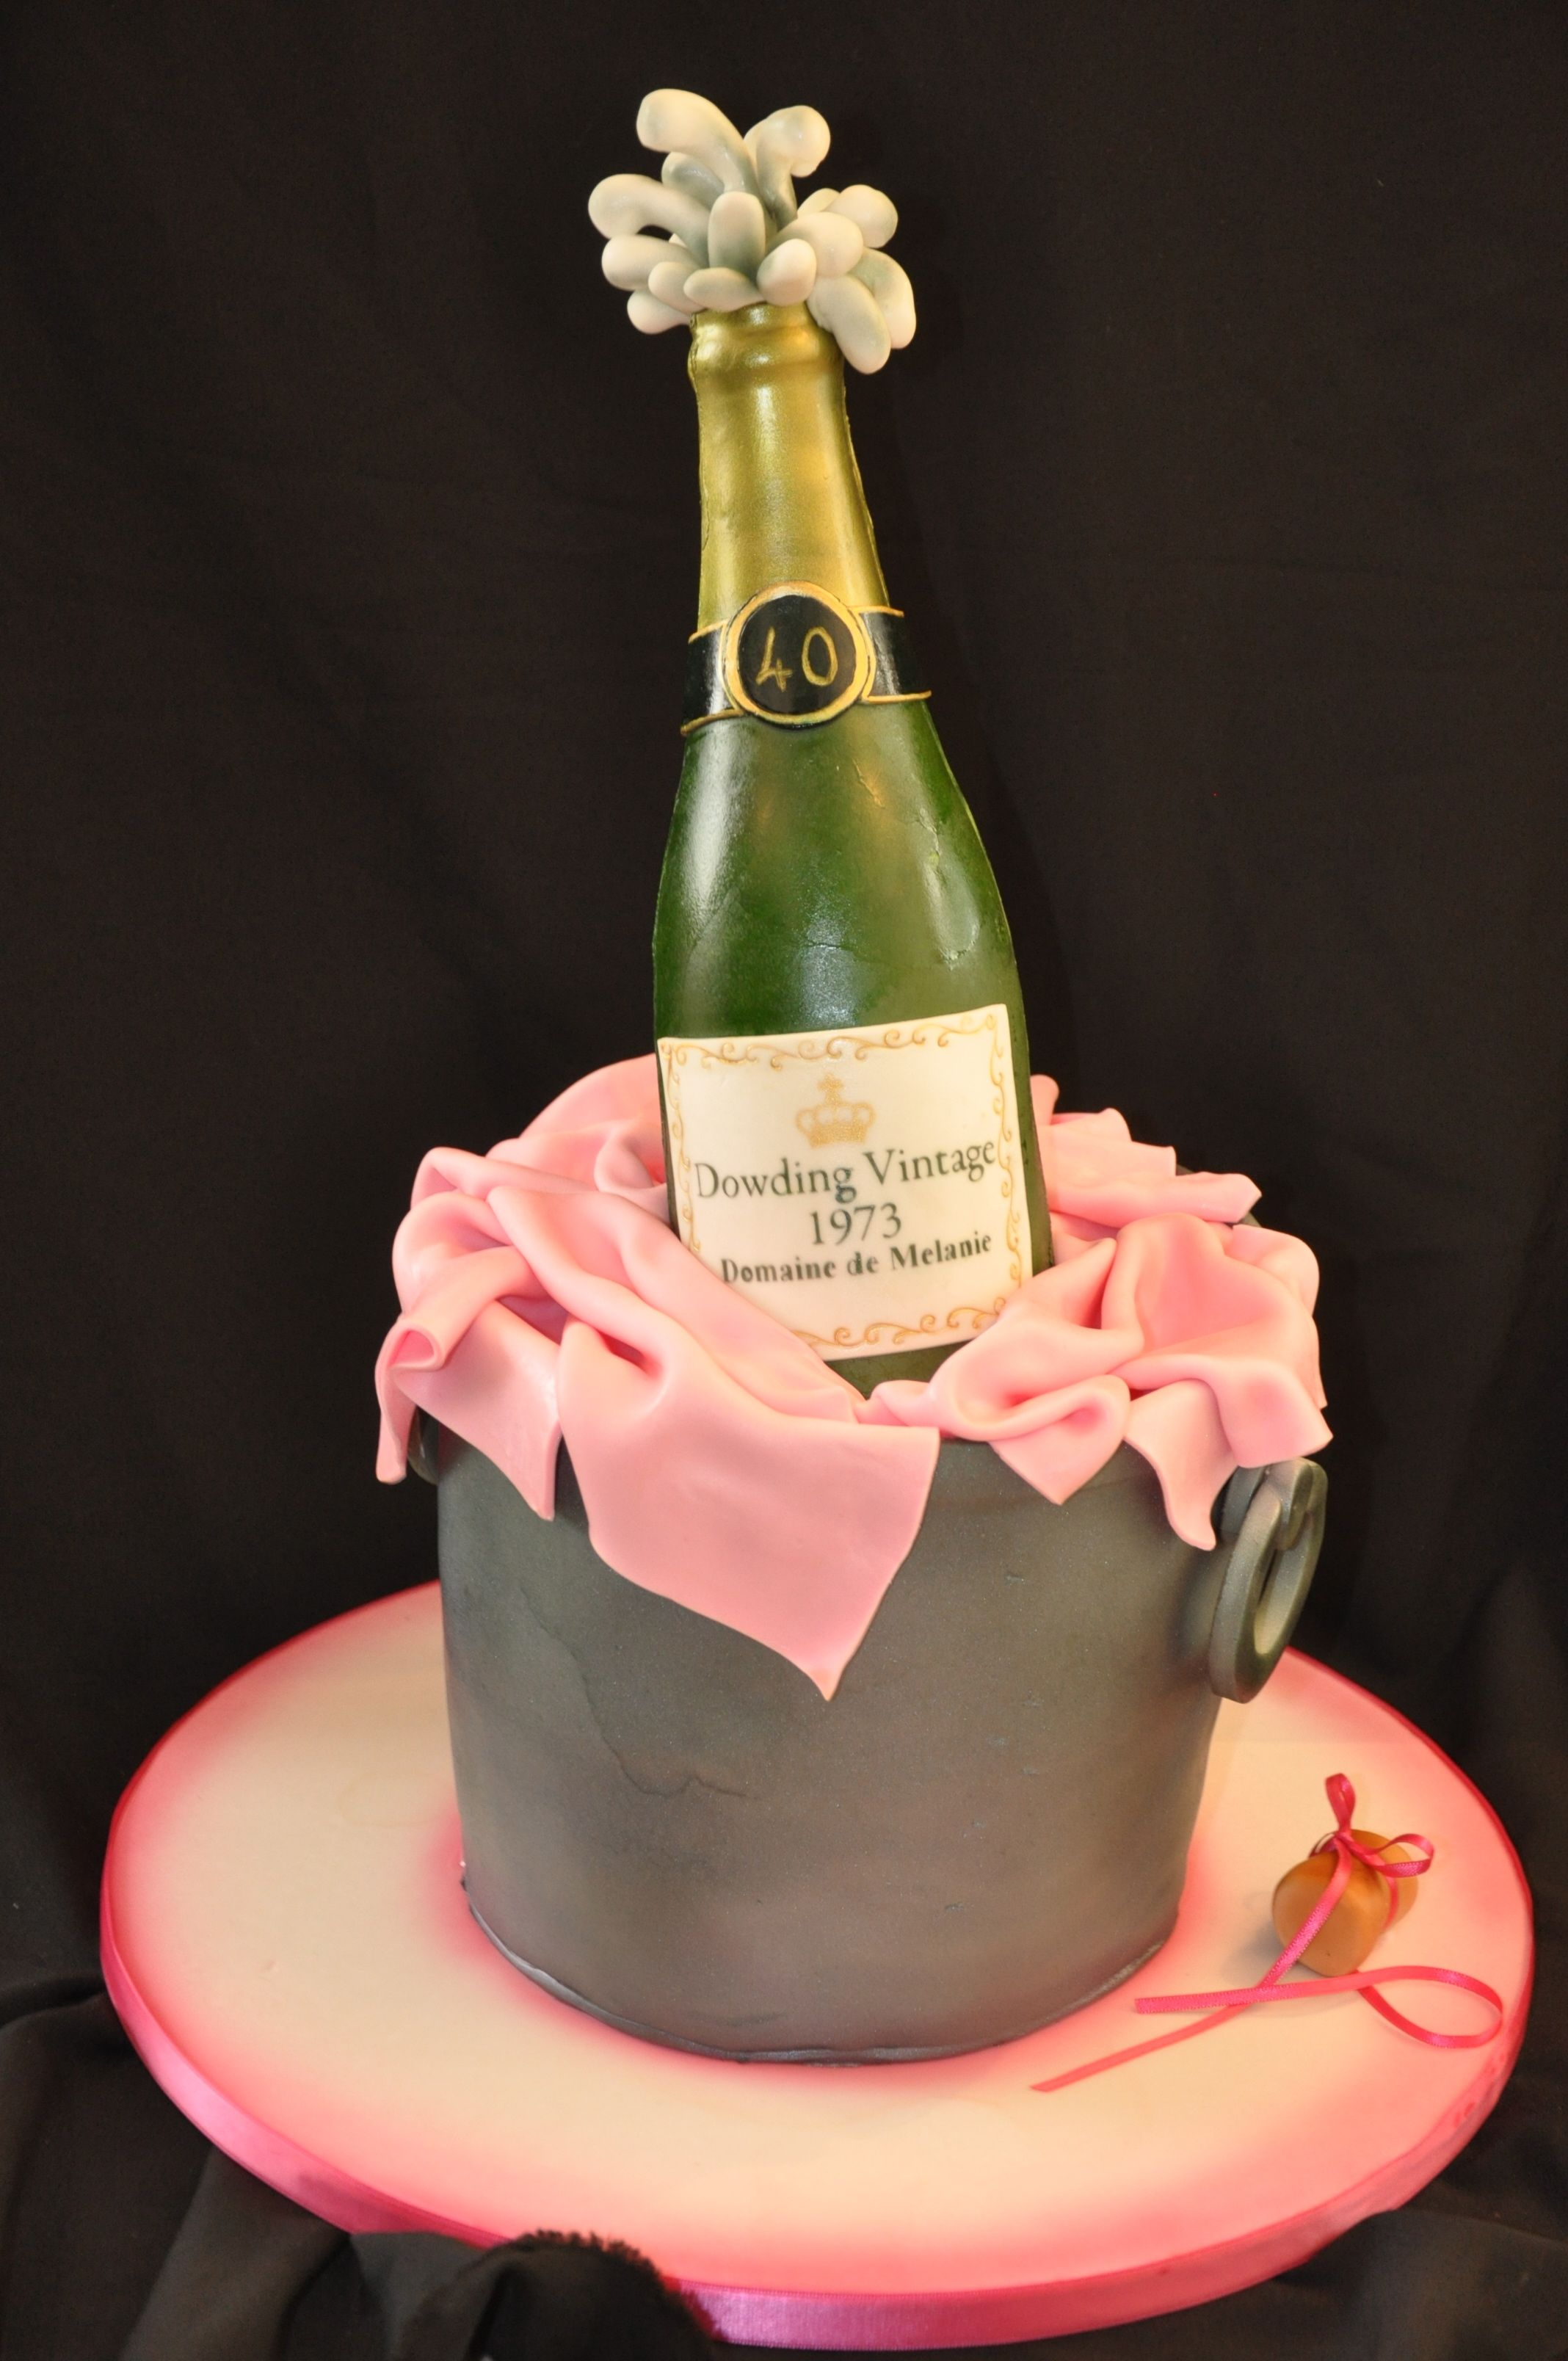 Images Of Birthday Cake And Champagne : Champagne bottle in a bucket cake. All edible. From Pink ...